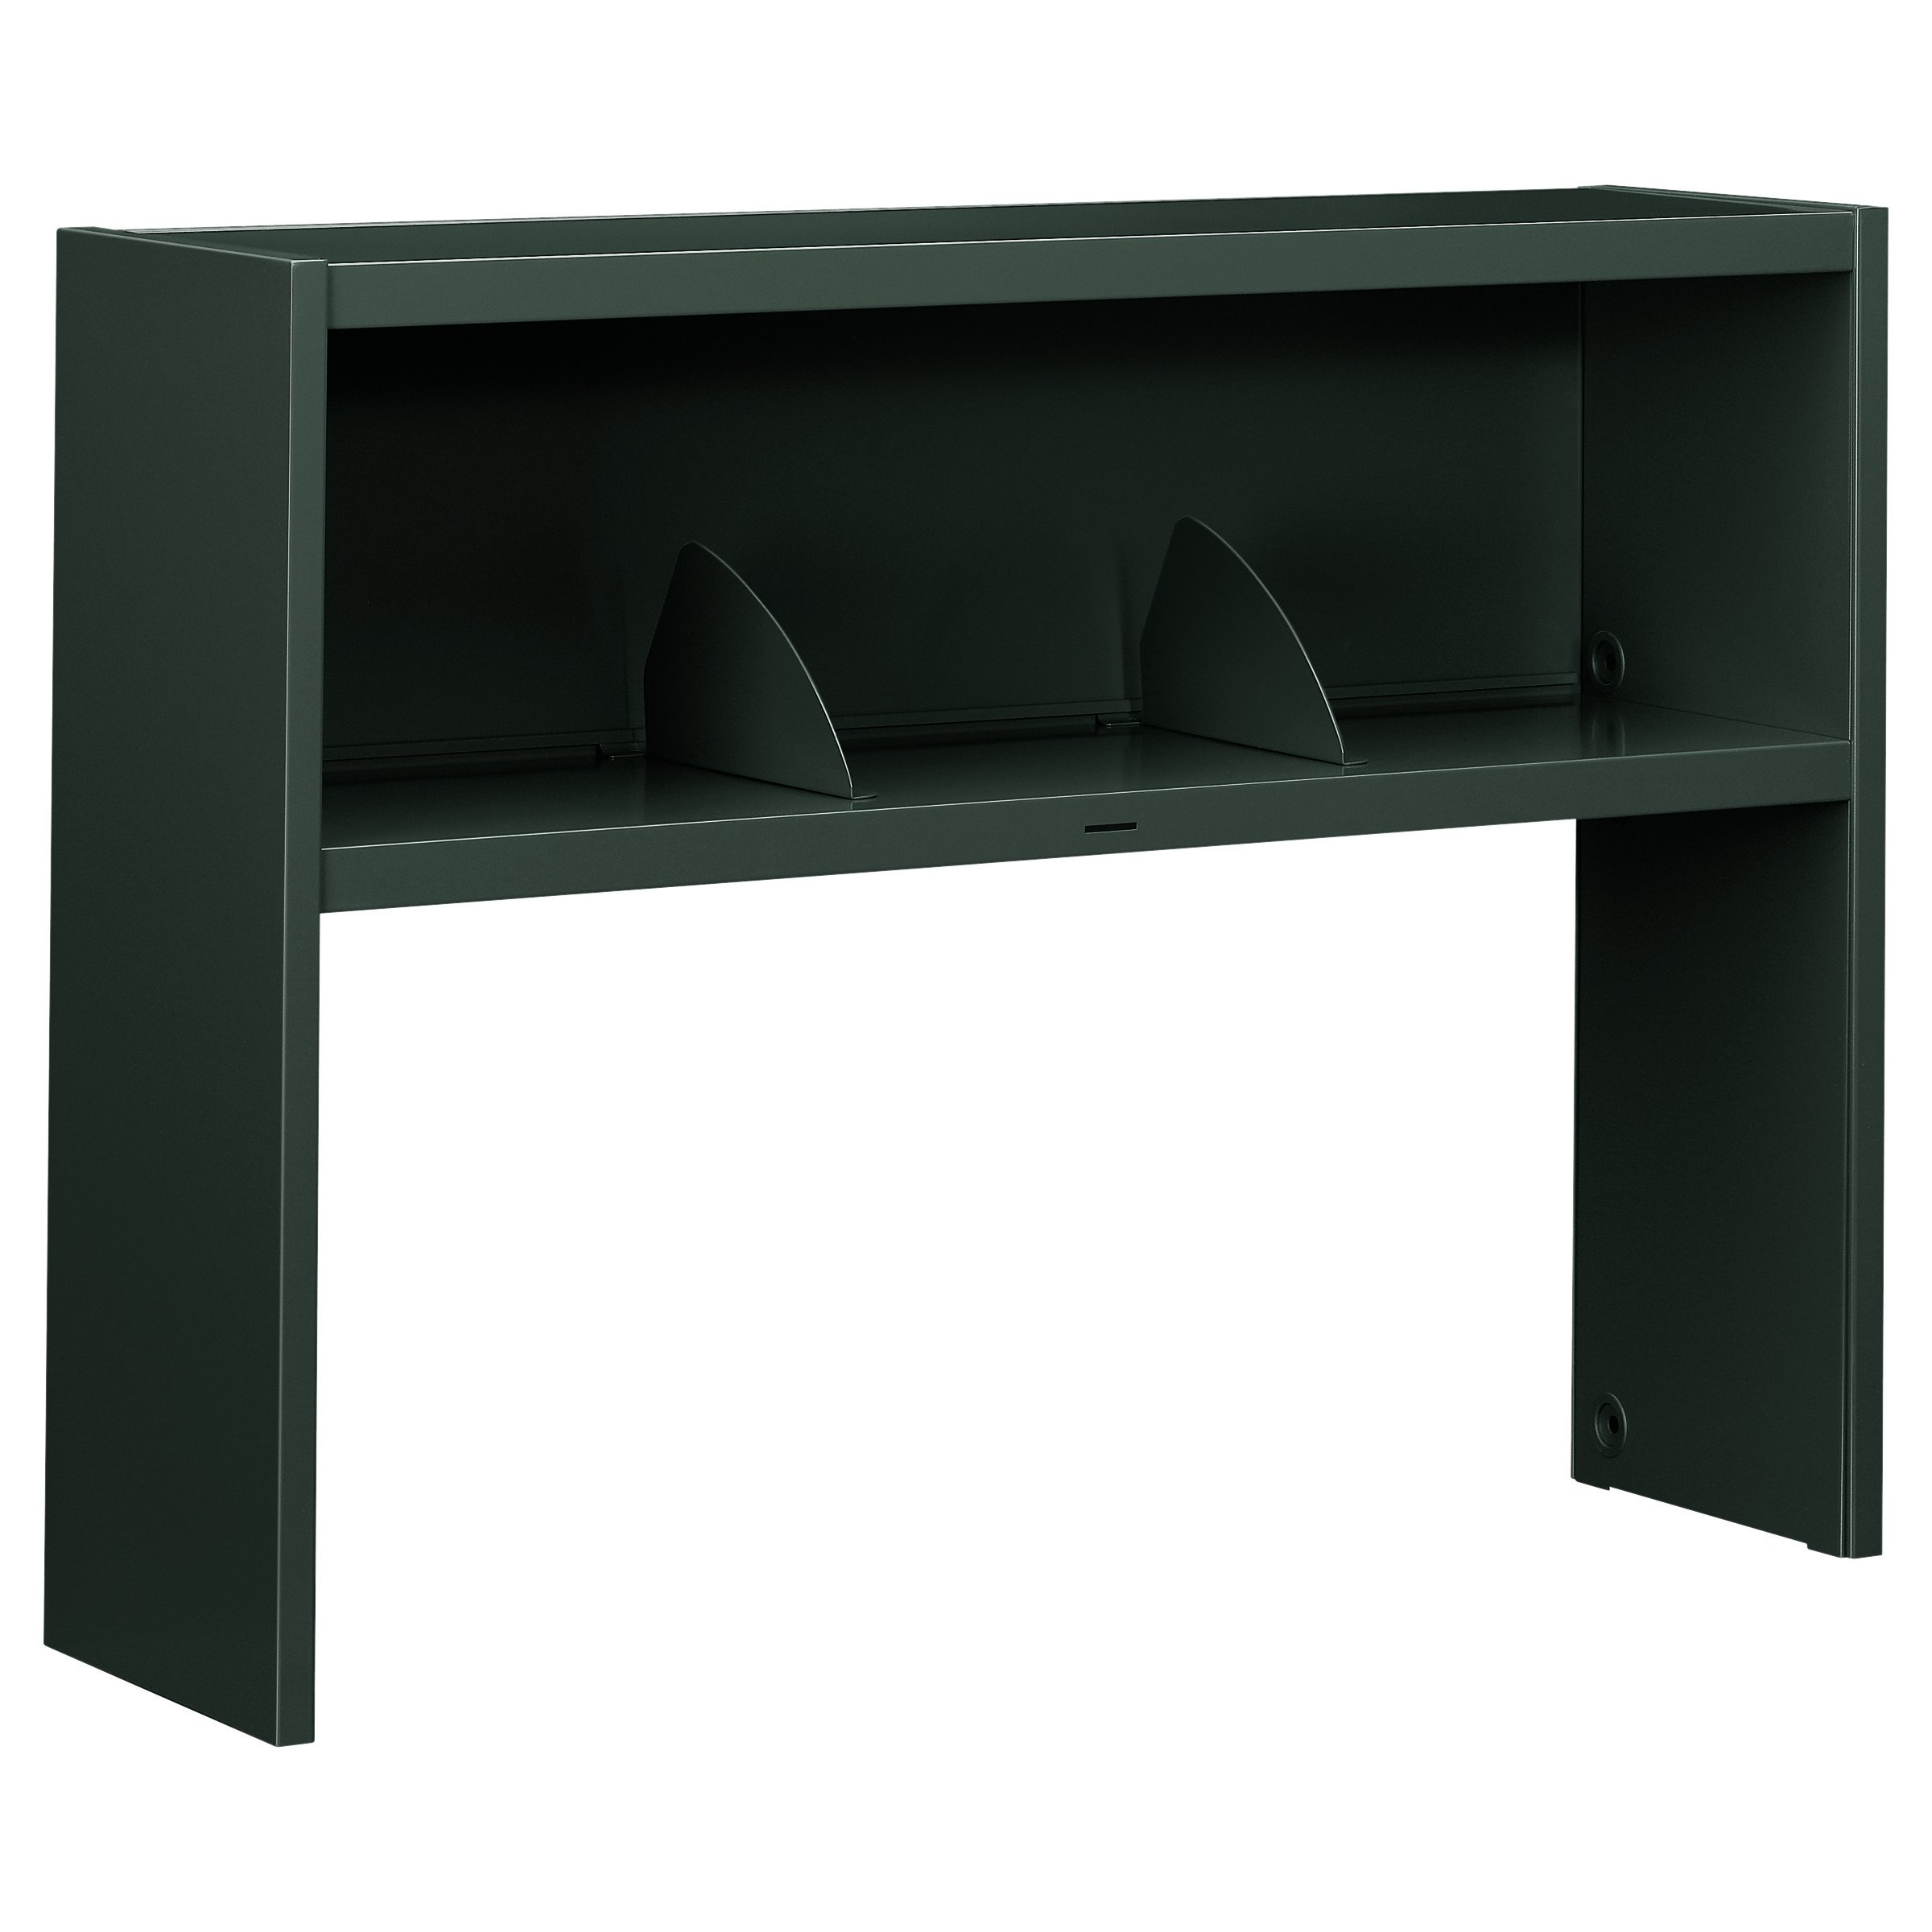 HON 386548NS 38000 Series Stack On Open Shelf Hutch, 48w x 13 1/2d x 34 3/4h, Charcoal by HON (Image #1)